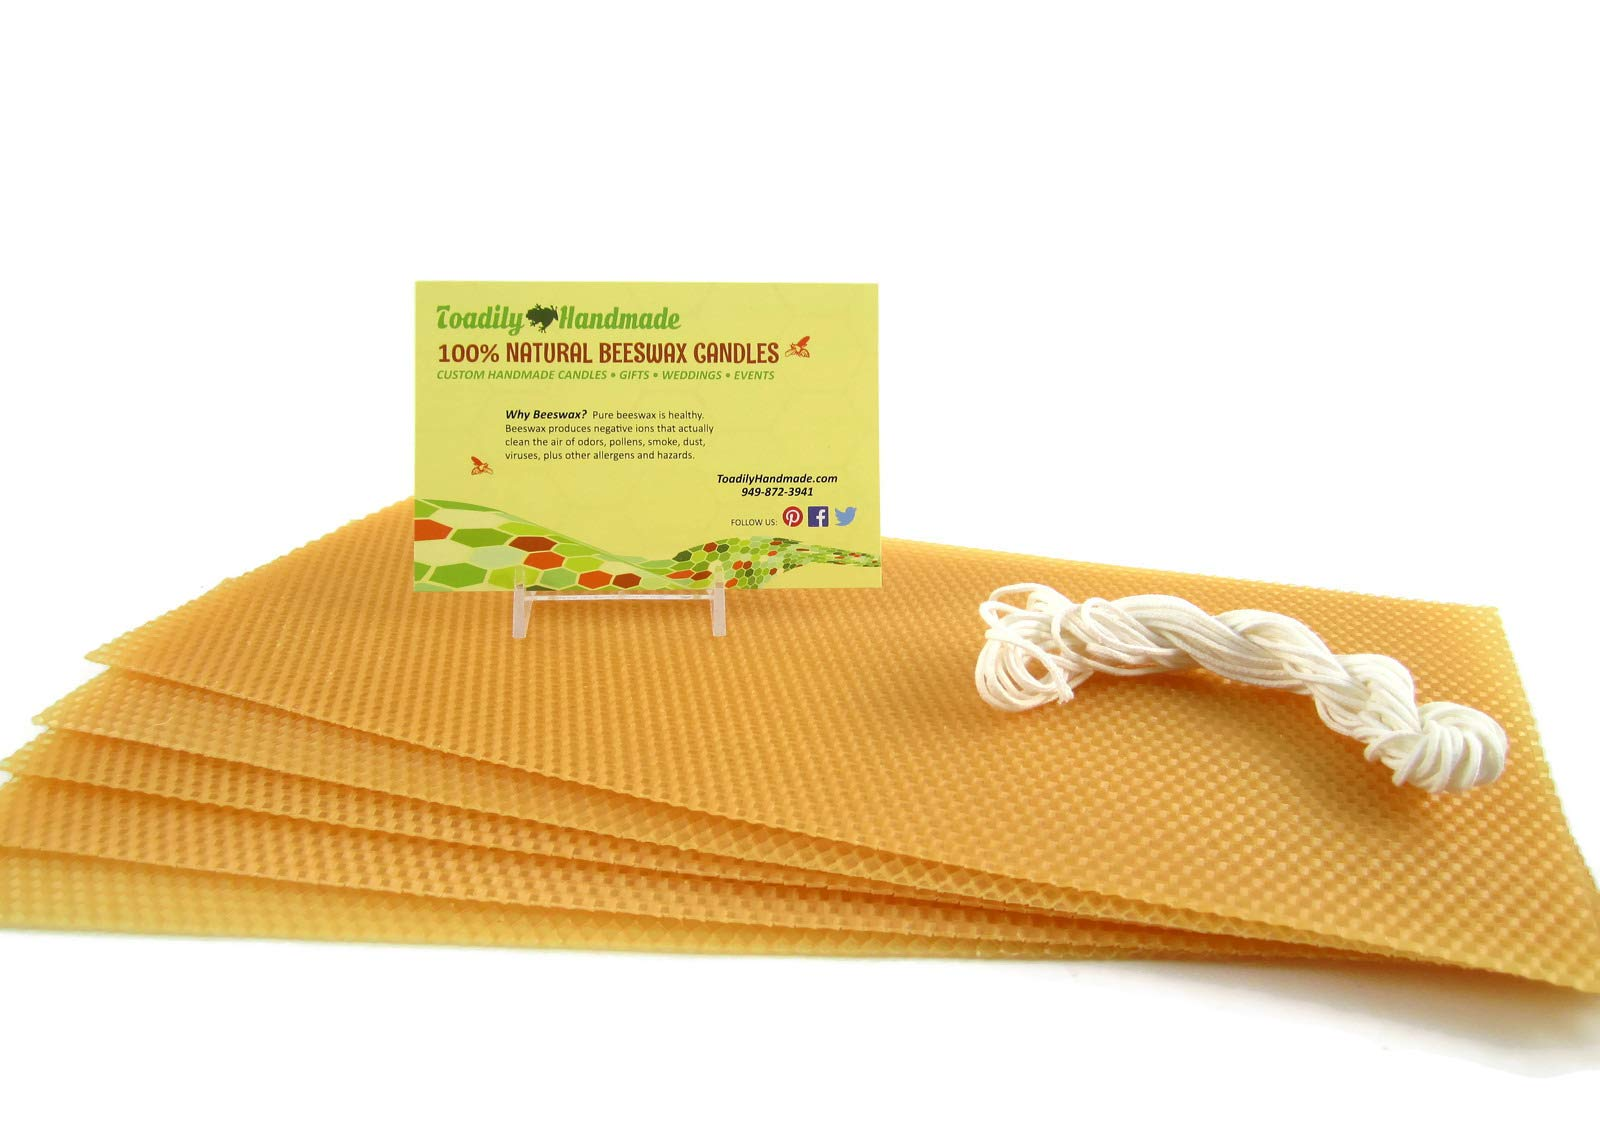 """Make Your Own Beeswax Candle Starter Kit - Includes 5 Full Size 100% Beeswax Honeycomb Sheets in Gold and Approx. 6 Yards of Cotton Wick. Each Beeswax Sheet Measures Approx. 8"""" x 16 1/4""""."""